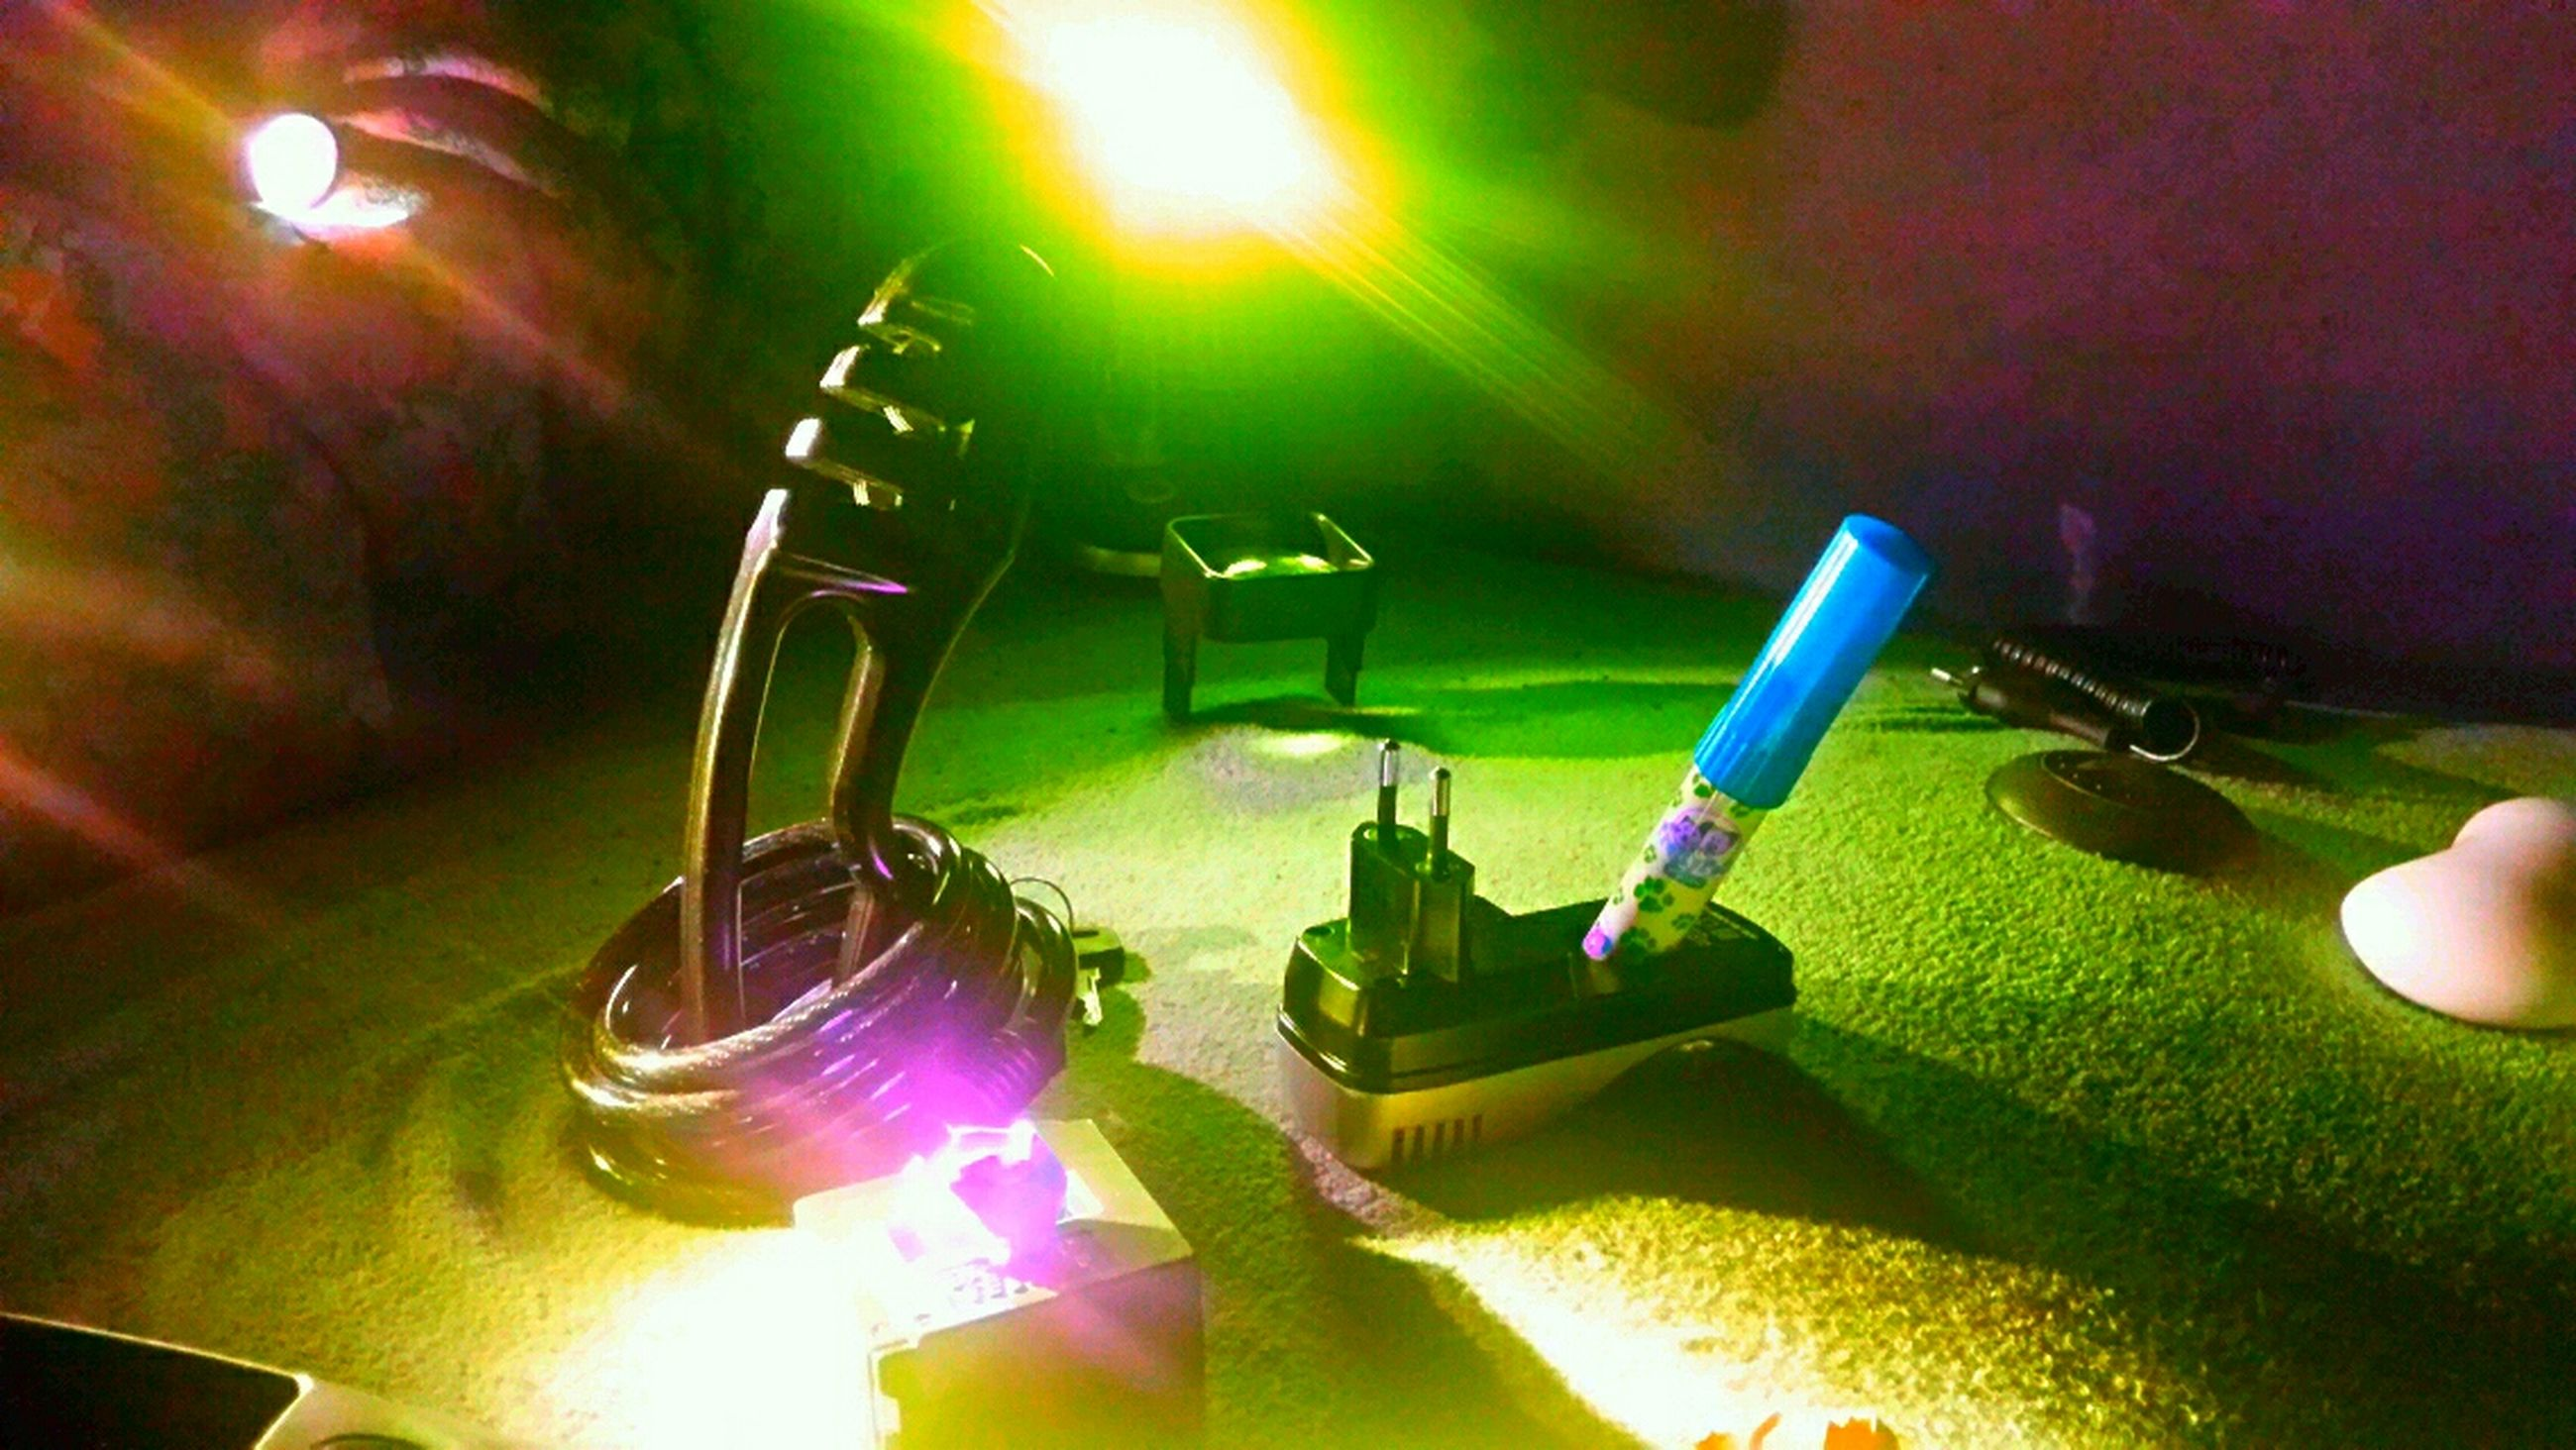 indoors, illuminated, close-up, lighting equipment, light - natural phenomenon, lens flare, focus on foreground, table, sunlight, glowing, no people, high angle view, green color, selective focus, decoration, reflection, light beam, night, part of, shiny